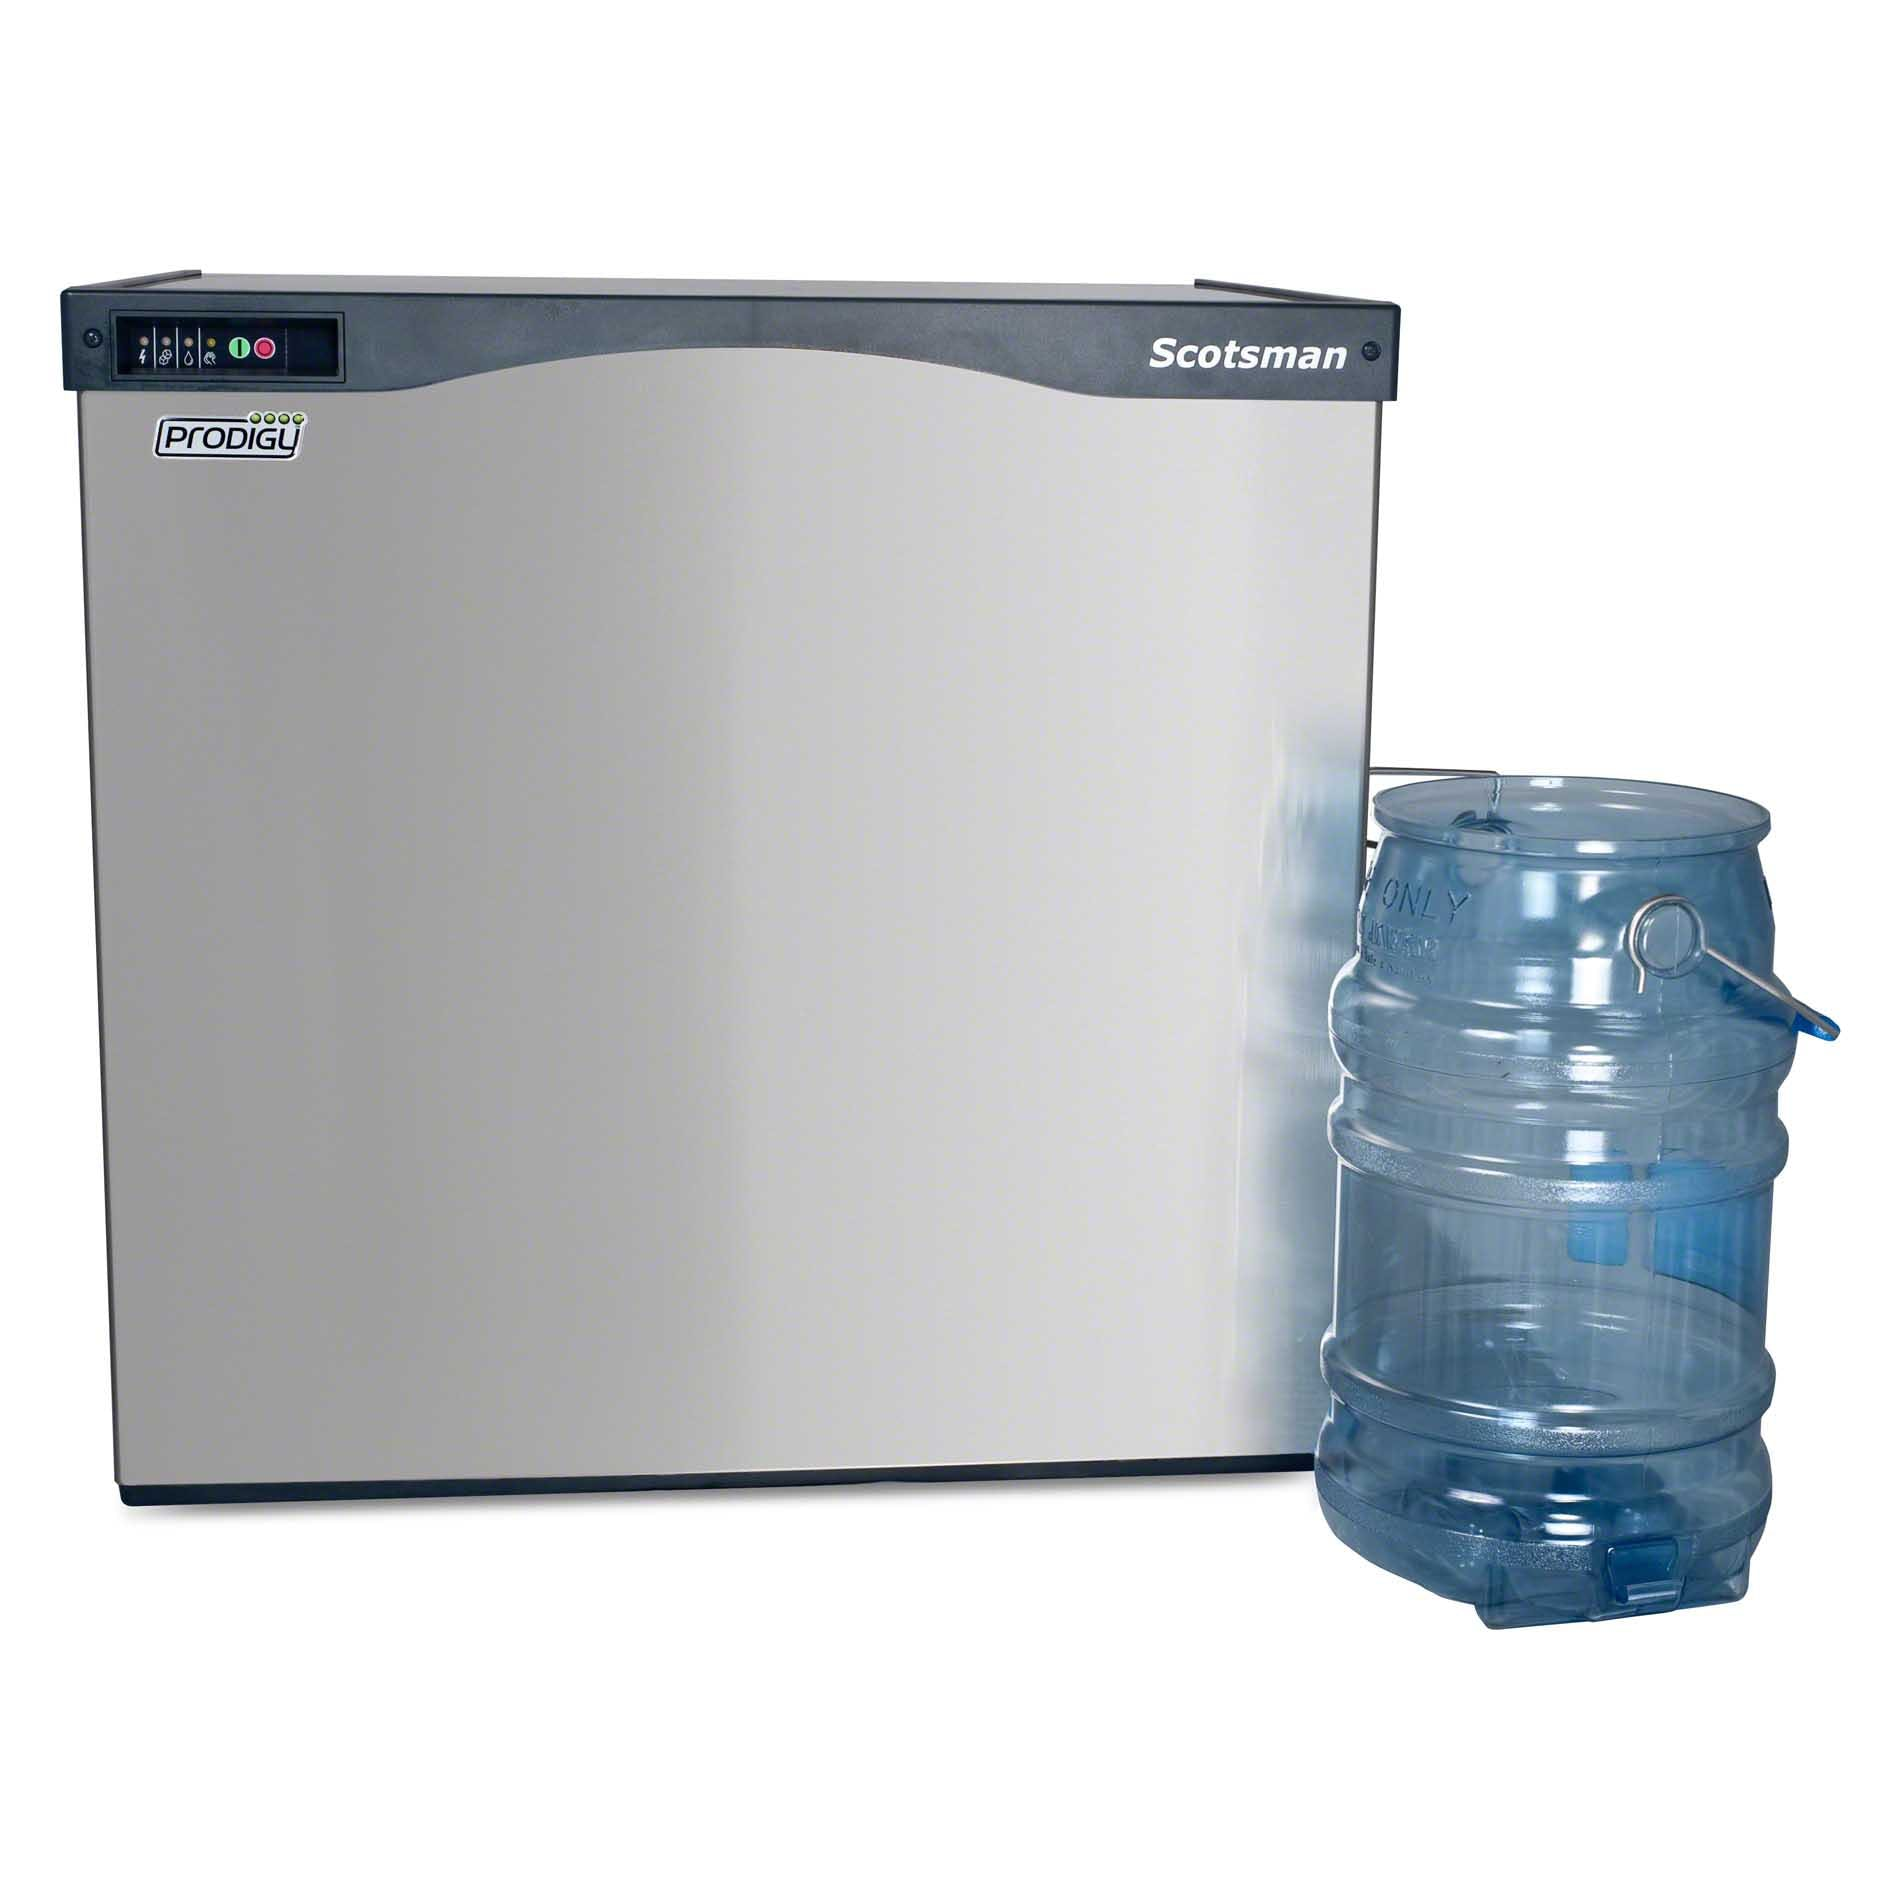 Scotsman - C0830SR-3A 870 lb Prodigy Half Size Cube Ice Machine Ice machine sold by Food Service Warehouse